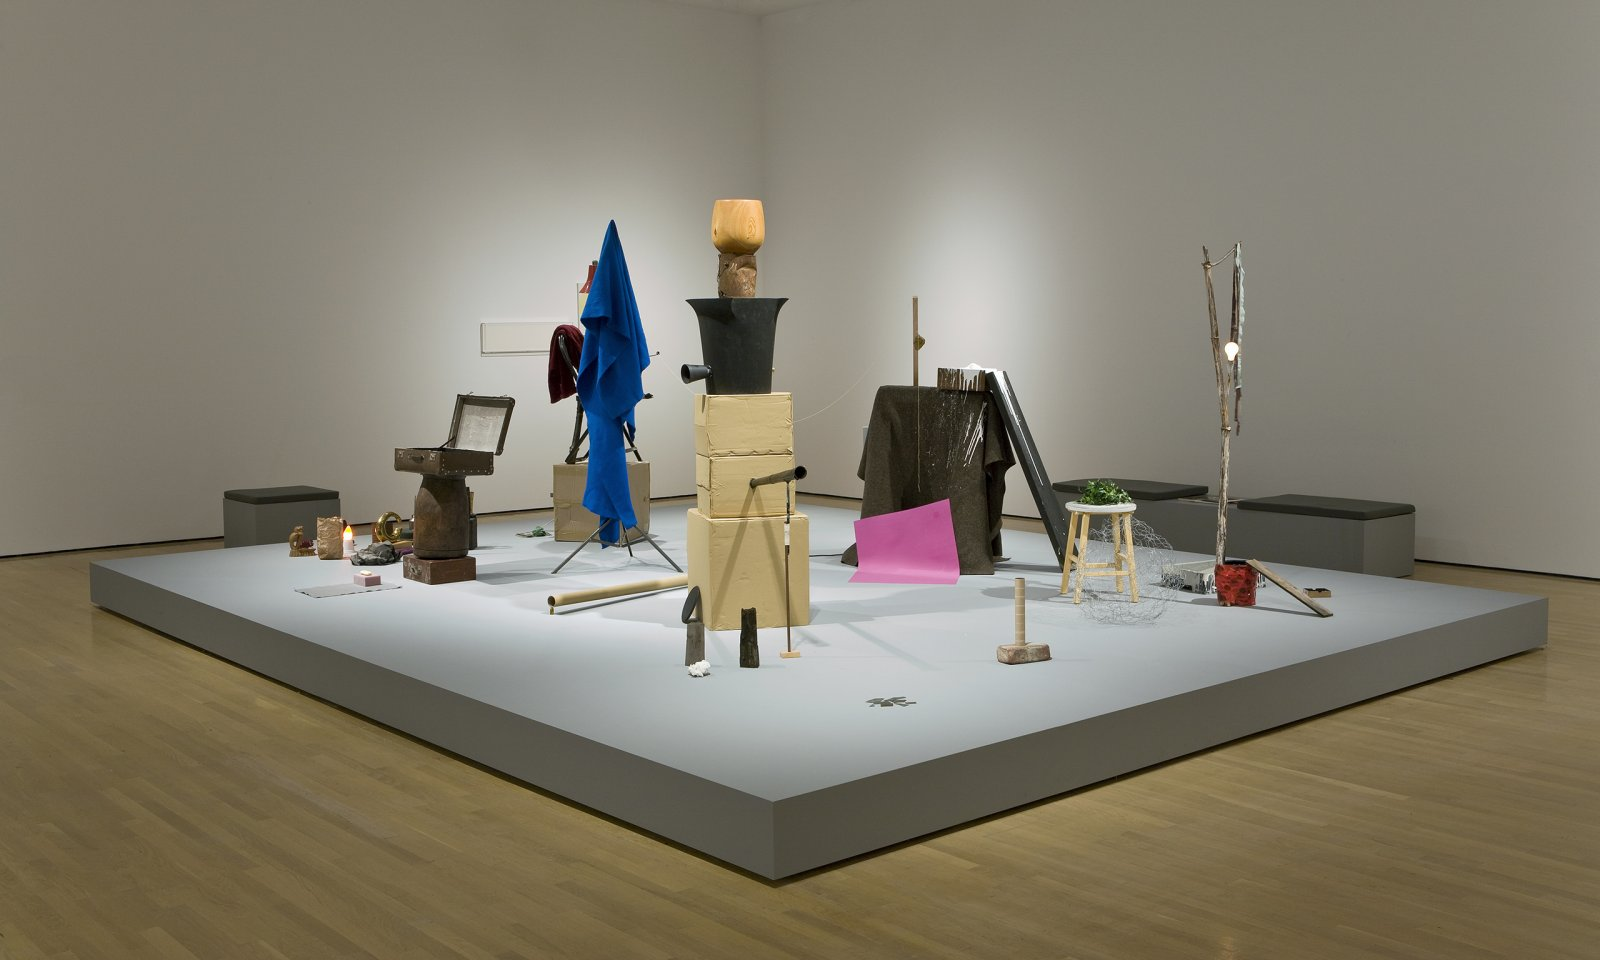 Geoffrey Farmer,And Finally the Street Becomes the Main Character (Clock), 2005–2008, wooden stage, computer controlled soundscape, 8 speakers, styrene brick, glass shards, paint can, tree branch, paint tray, stool, artificial ivy, hand carved wooden bowl, cardboard boxes, wooden mallet, protest sign, cardboard tubes, leather suitcase, folding chair, towel, sweater, desk lamp, string, blanket, light bulbs, tripod, sponge, lock box, tissue, paper bag, oil can, moth, thread, masking tape, felt, books, rag, wooden figure, spoon, paint, styrene cup, chopstick, candleholder, ballet costume, brass sculpture, found wood, various framed works, dimensions variable